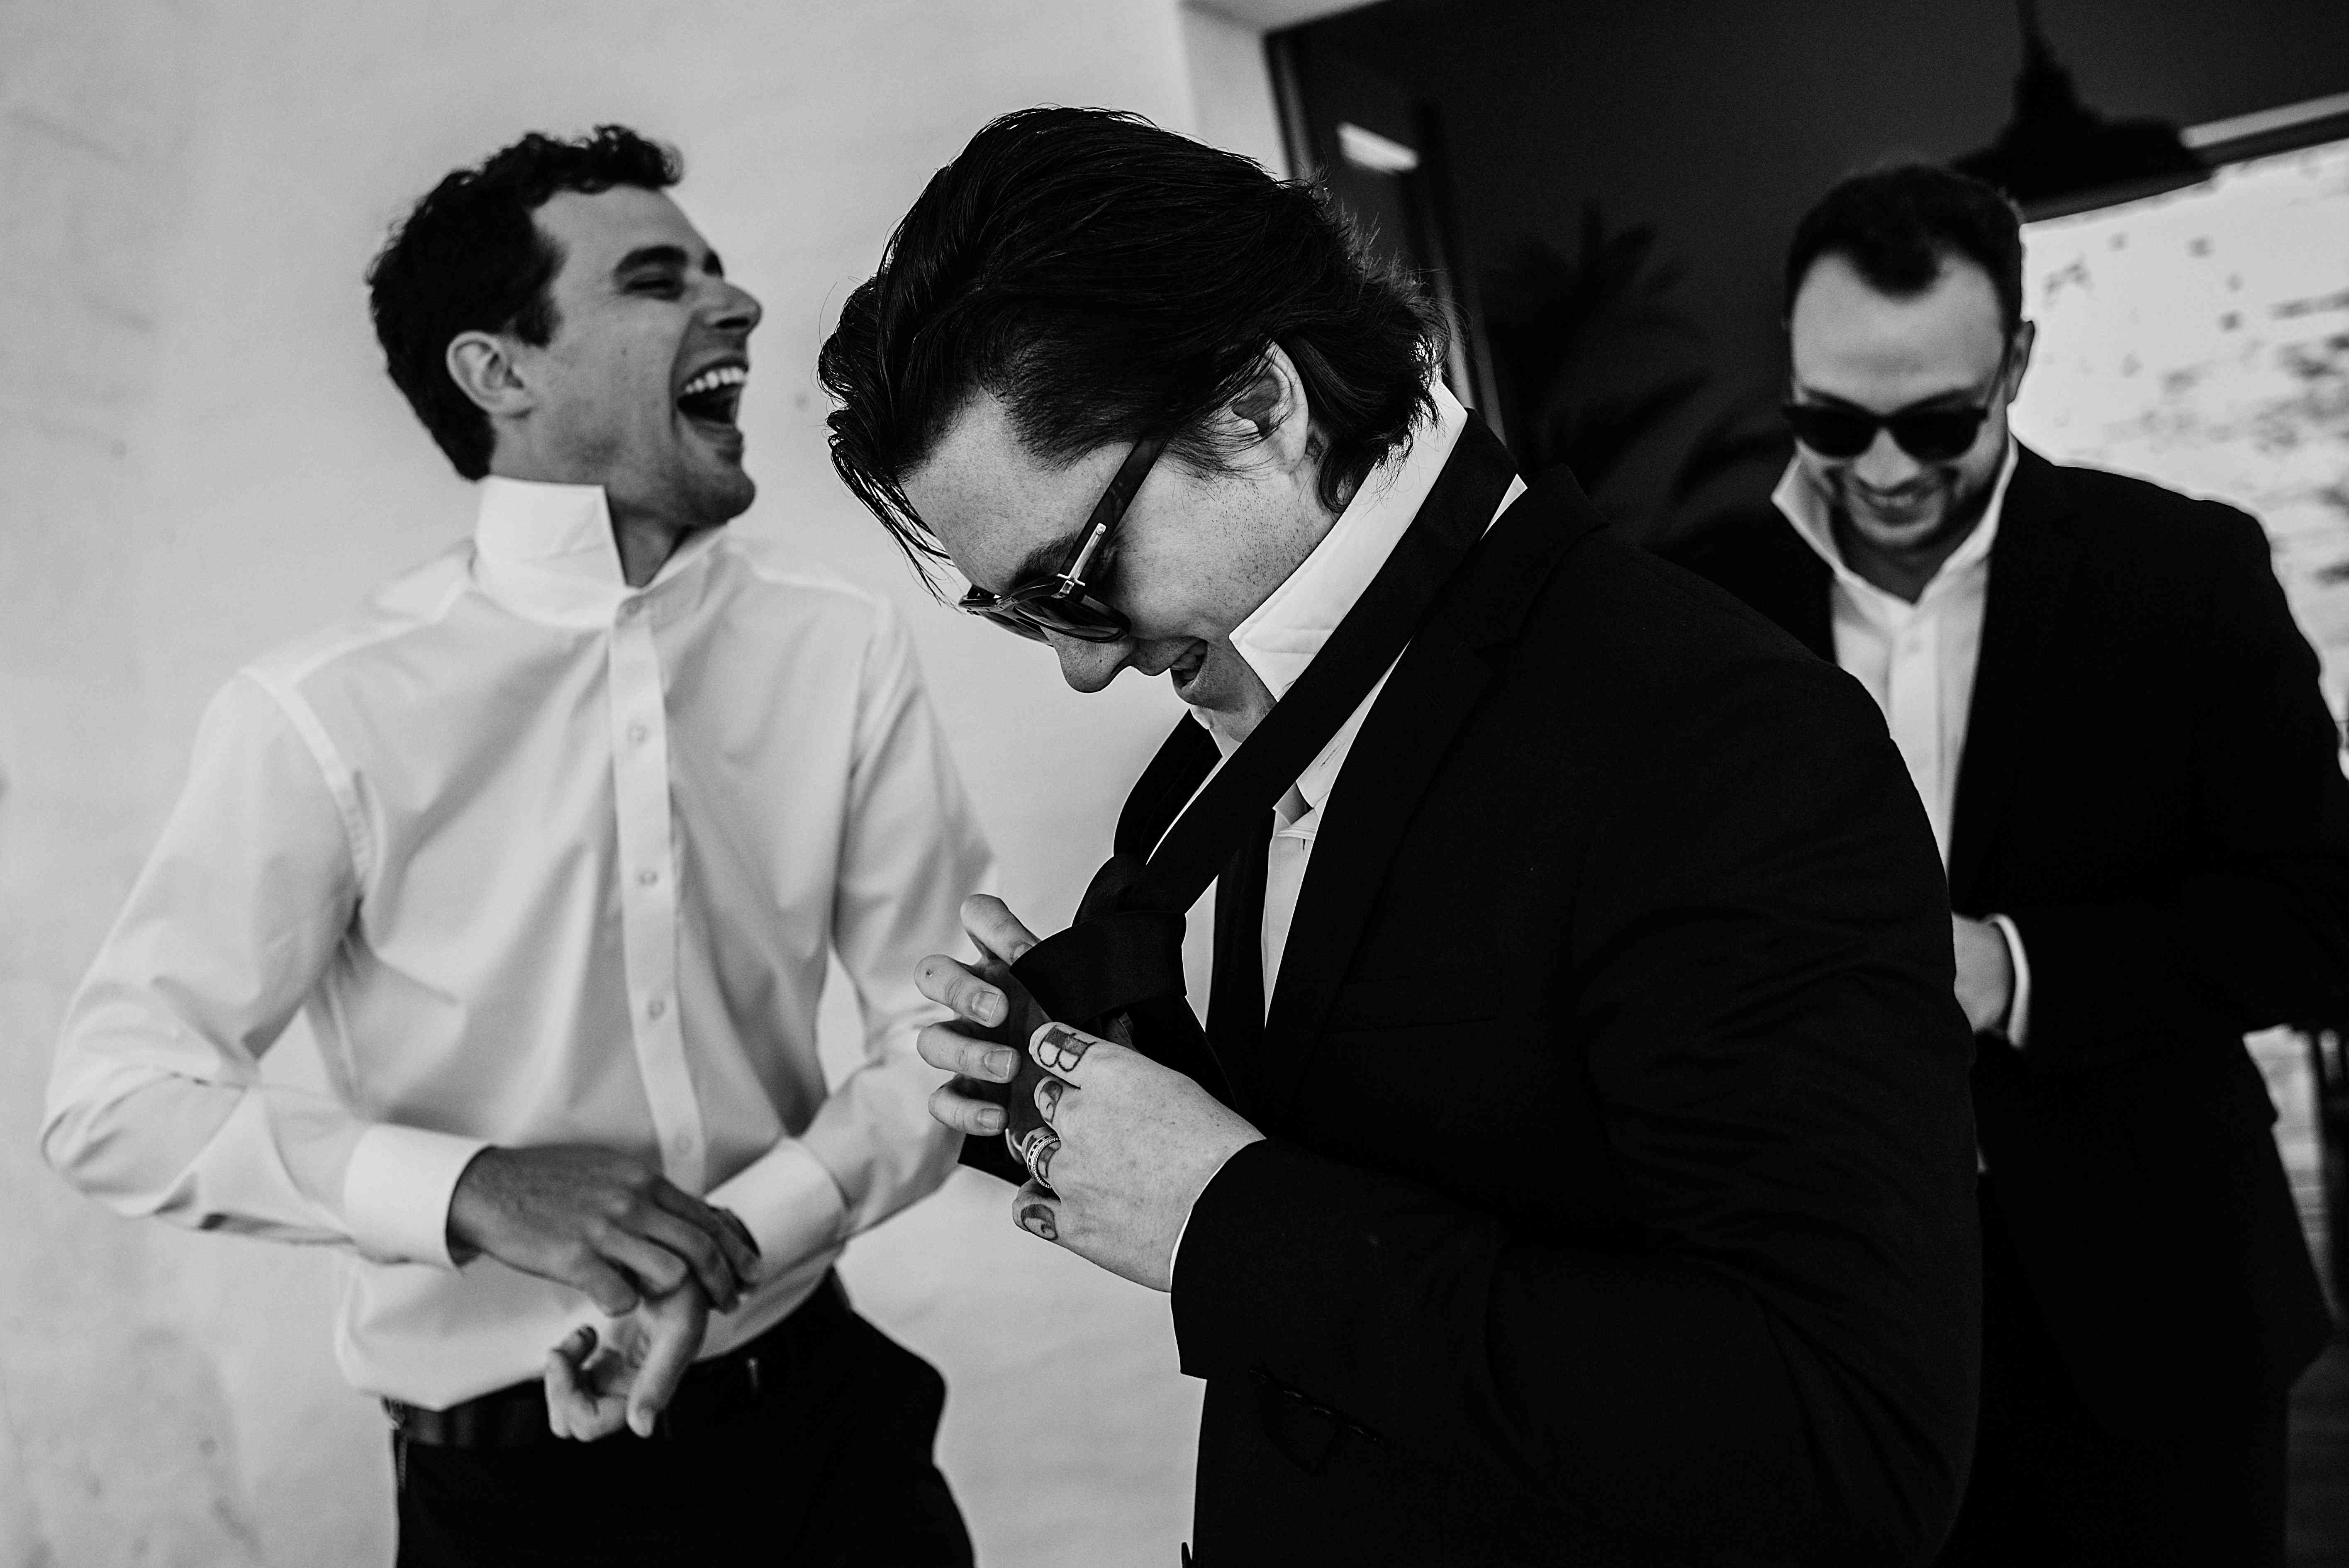 <p>Groom and groomsmen getting ready</p><br><br>